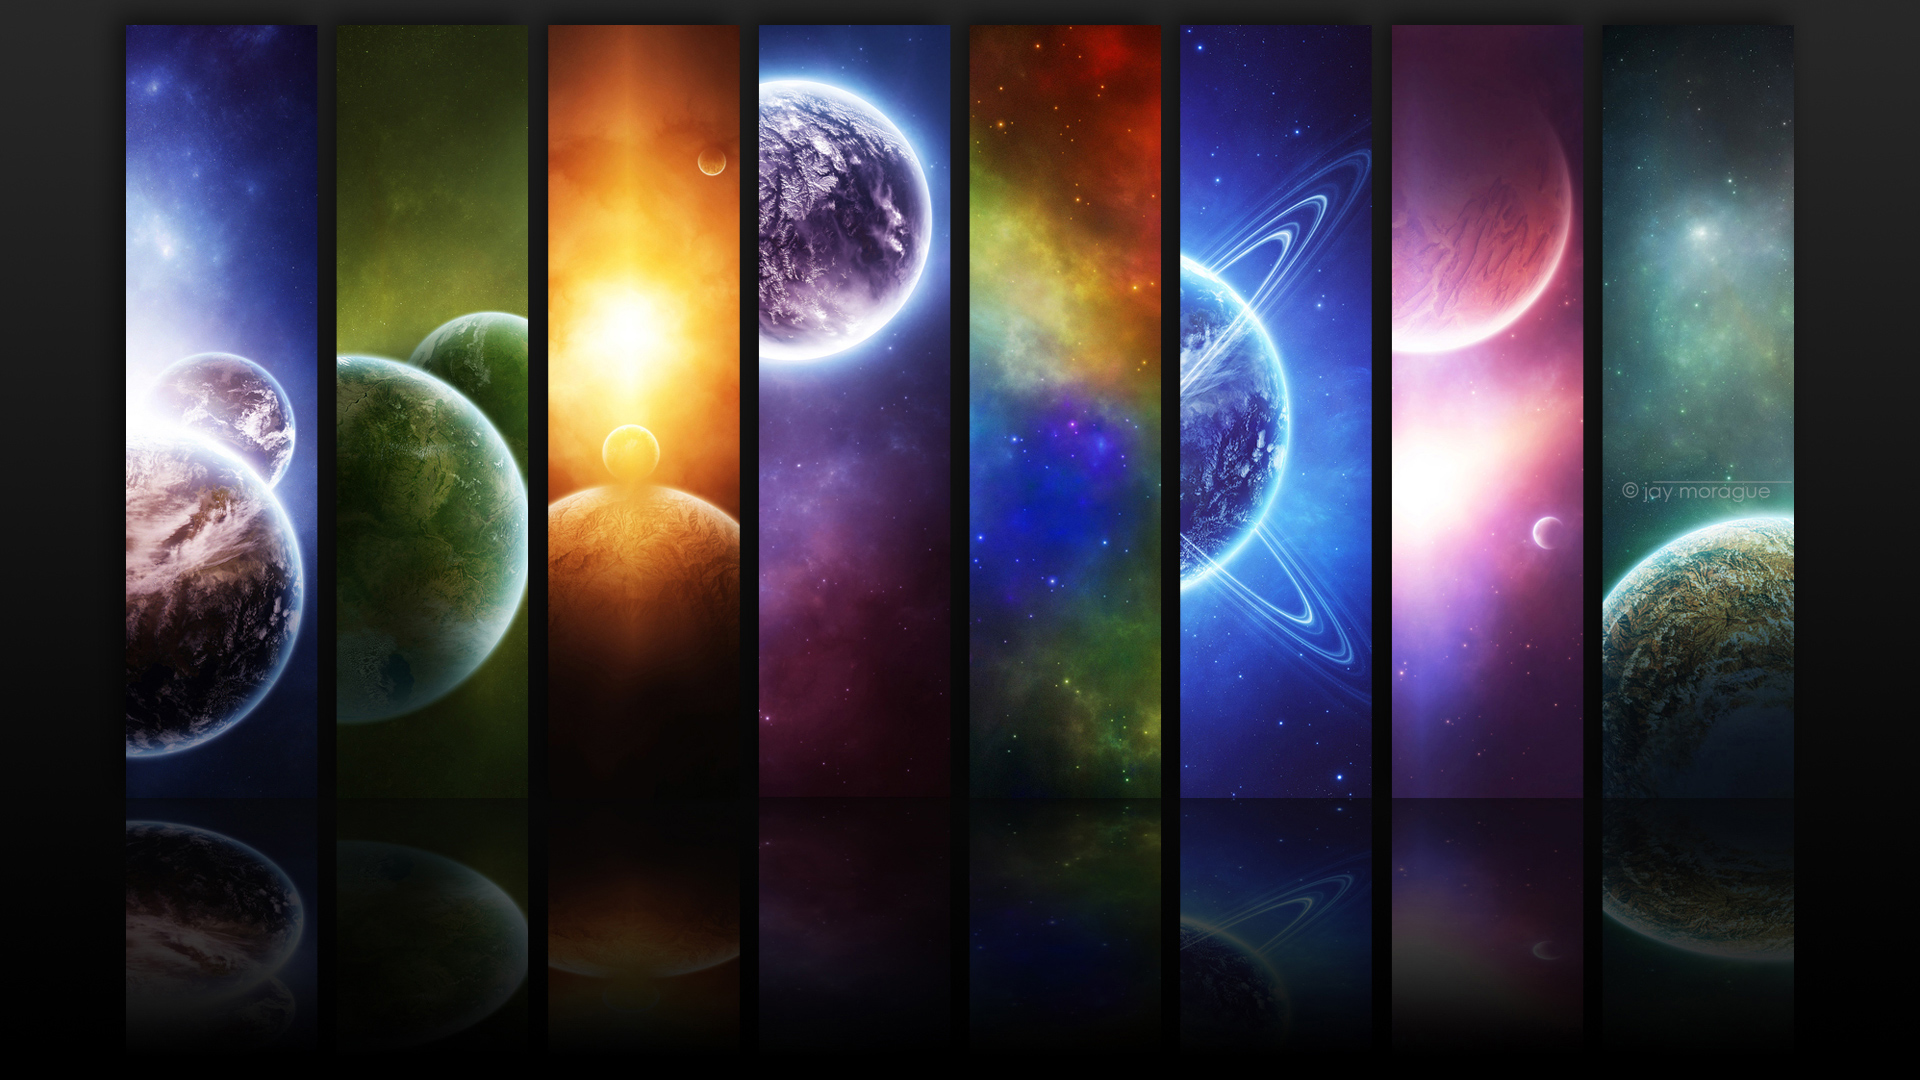 HD Wallpapers Infinity HDTV 1080p